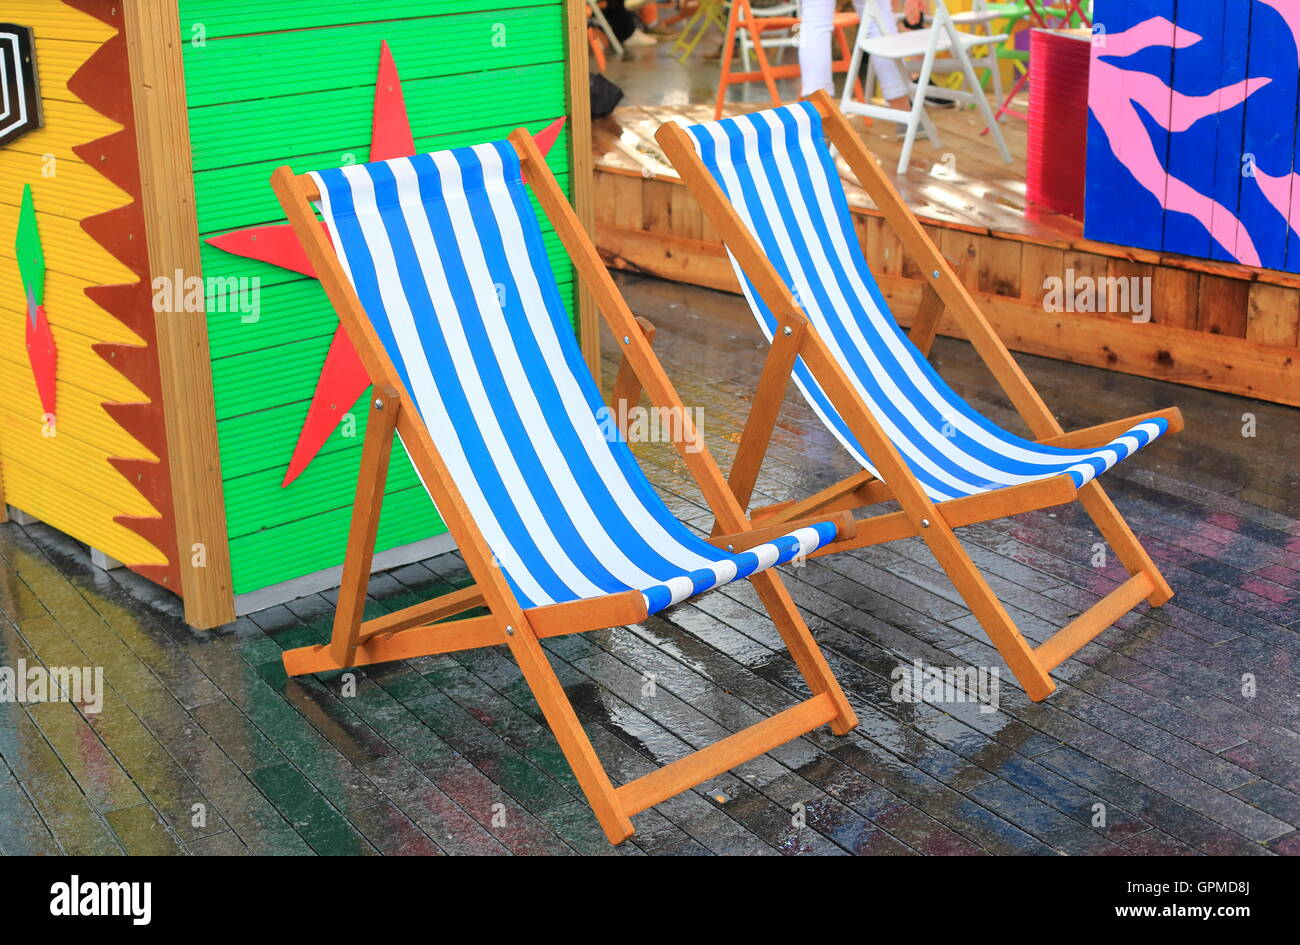 Summer In The City - Stock Image